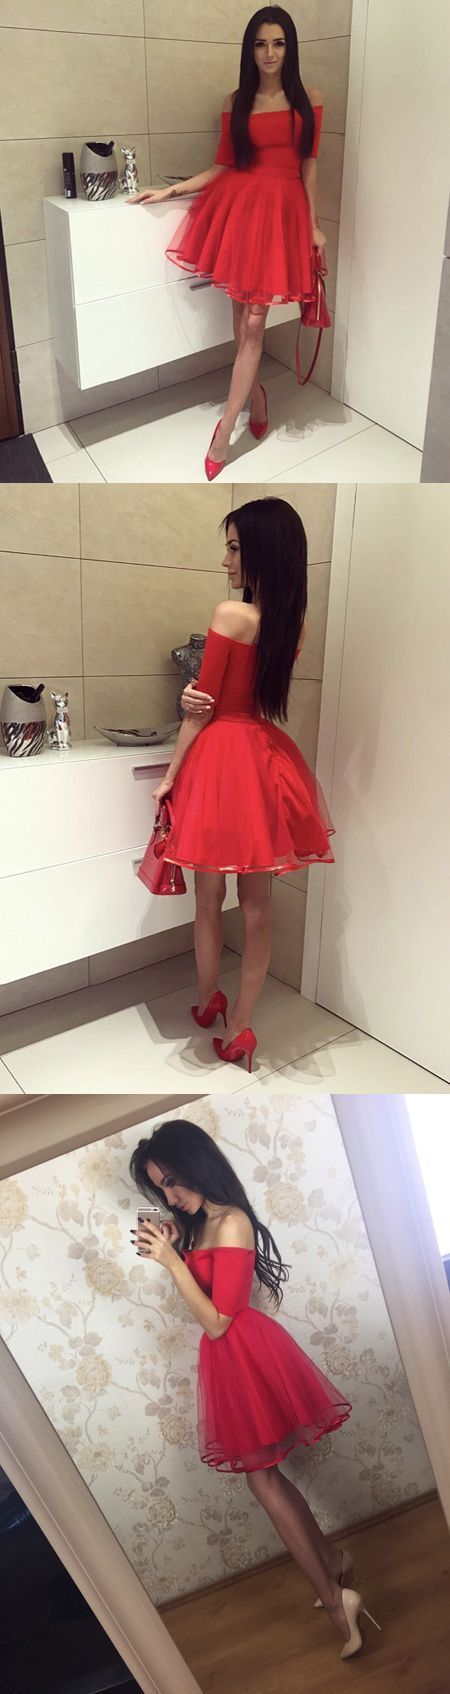 short homecoming dresses,cheap homecoming dresses,off-the-shoulder homecoming dresses,YY383